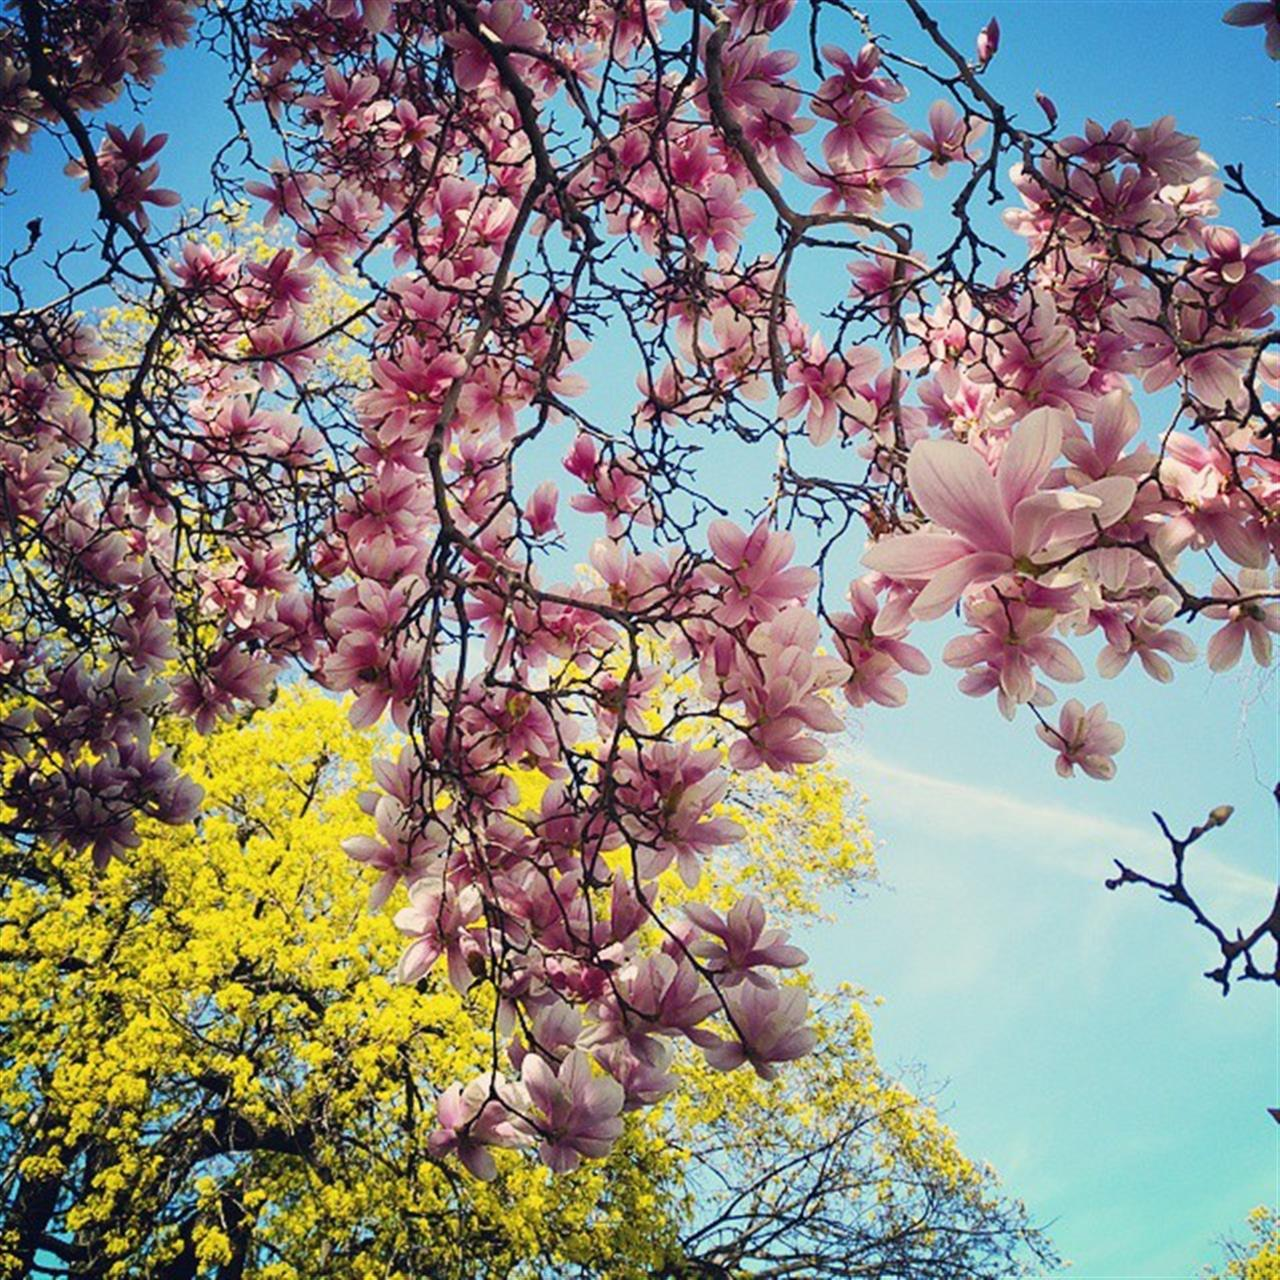 #spring #nature #cherryblossoms #pink #yellow #color #roc #rochesterny #roctopshots #tree #blueskies #leaves #beauty #leadingrelocal